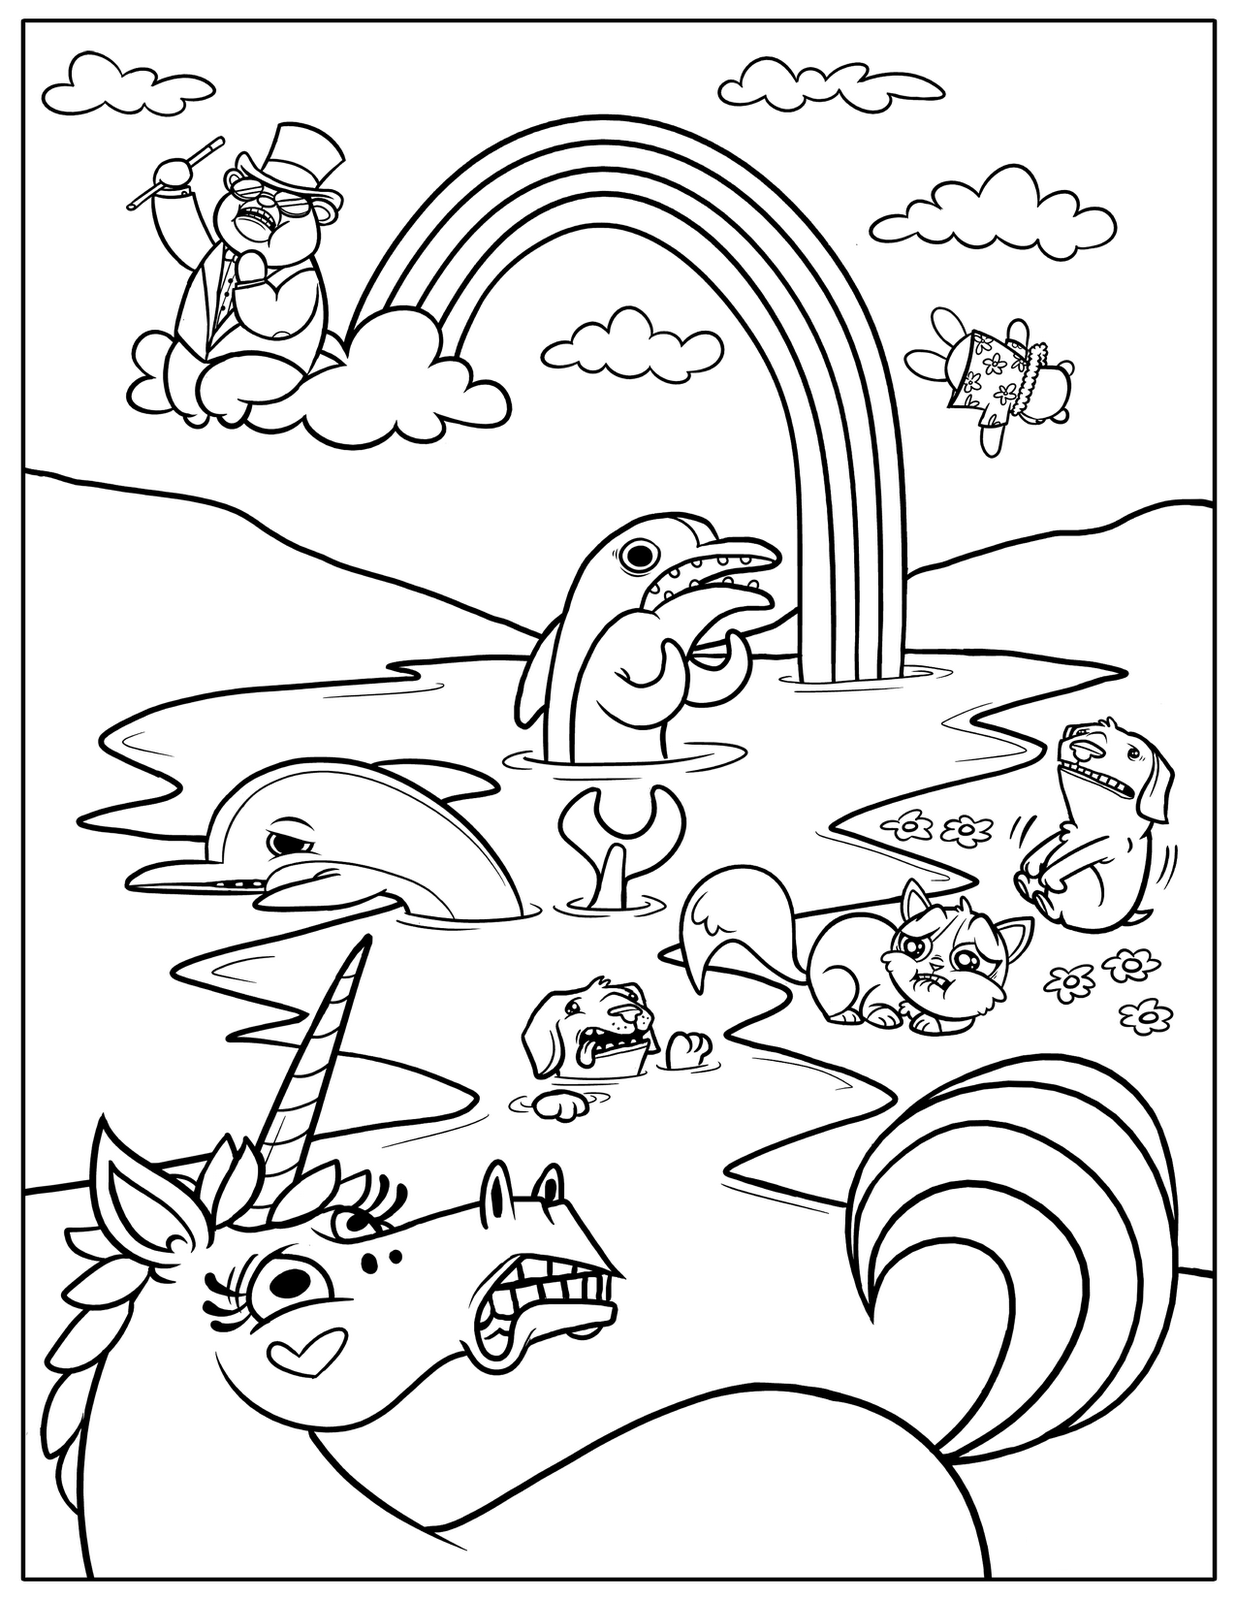 Free printable rainbow coloring pages for kids for Coloring book pages free